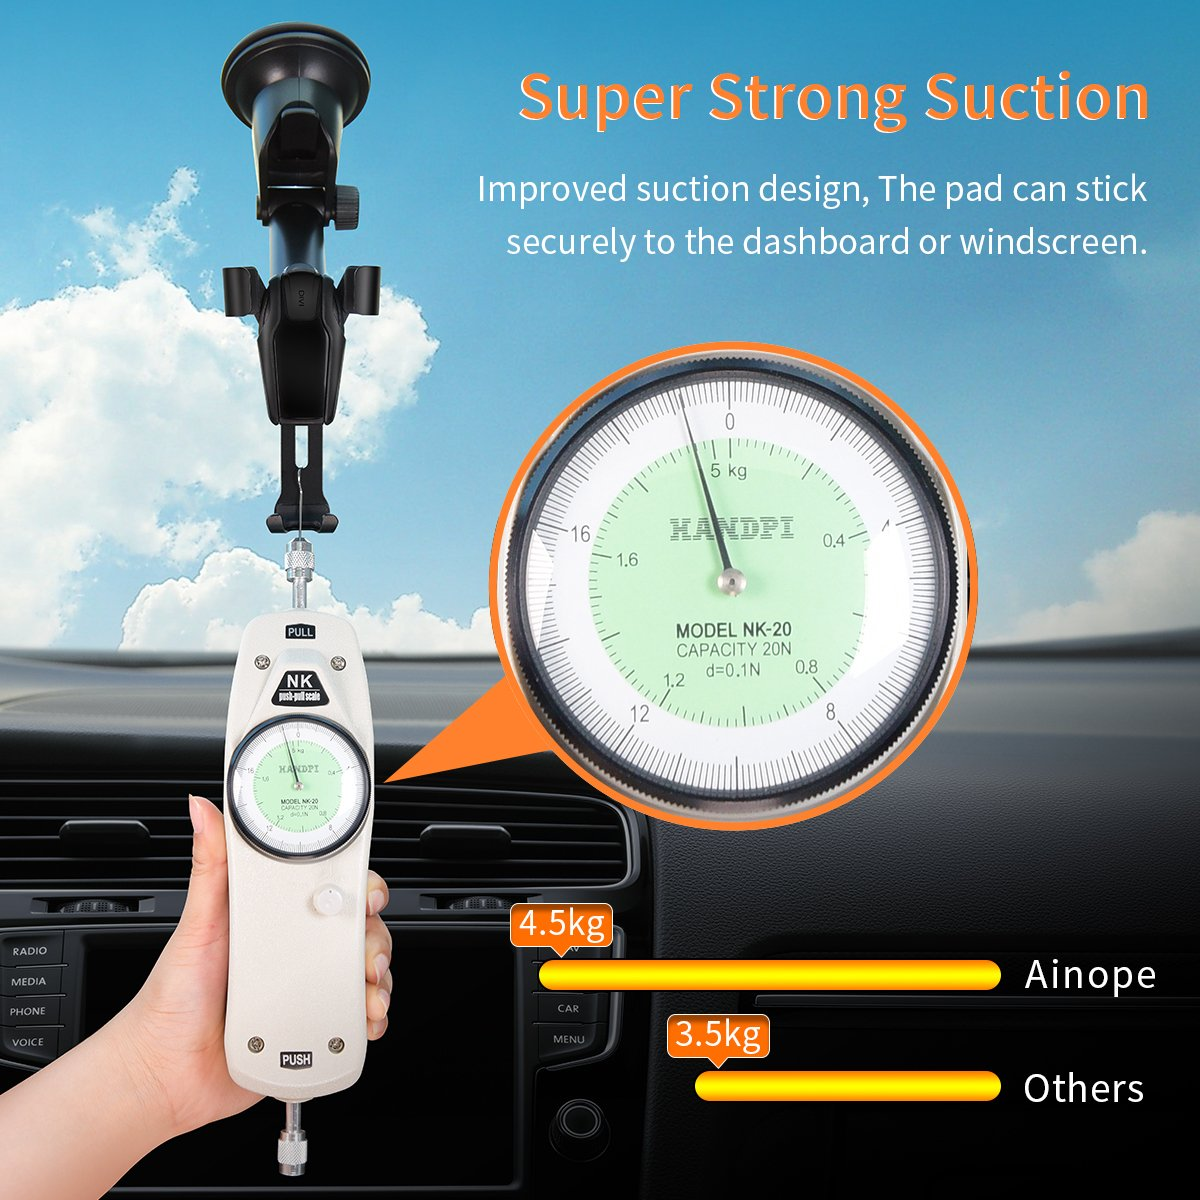 Cell Phone Holder Car, Universal Dashboard Cell Phone Holder Gravity Auto-Clamping Car Cradle Mount Adjustable Car Holder Phone X/ 8/7/ 6s/ Plus, Galaxy S9/ S8/ S7 Edge - Ainope by Ainope (Image #2)